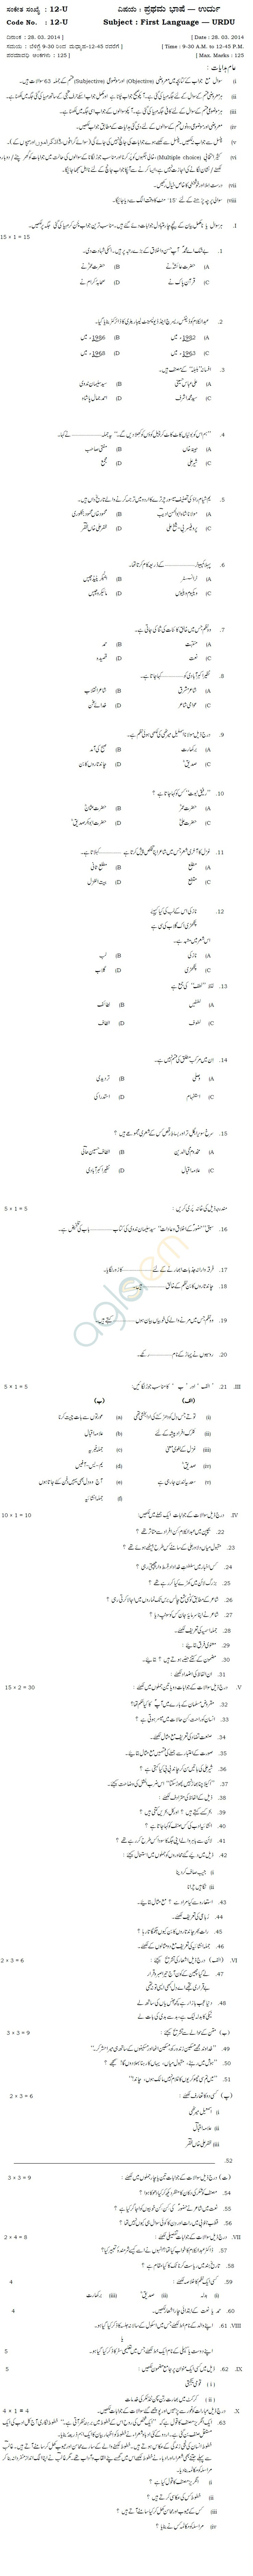 Karnataka SSLC Solved Question Paper April 2014 - Urdu